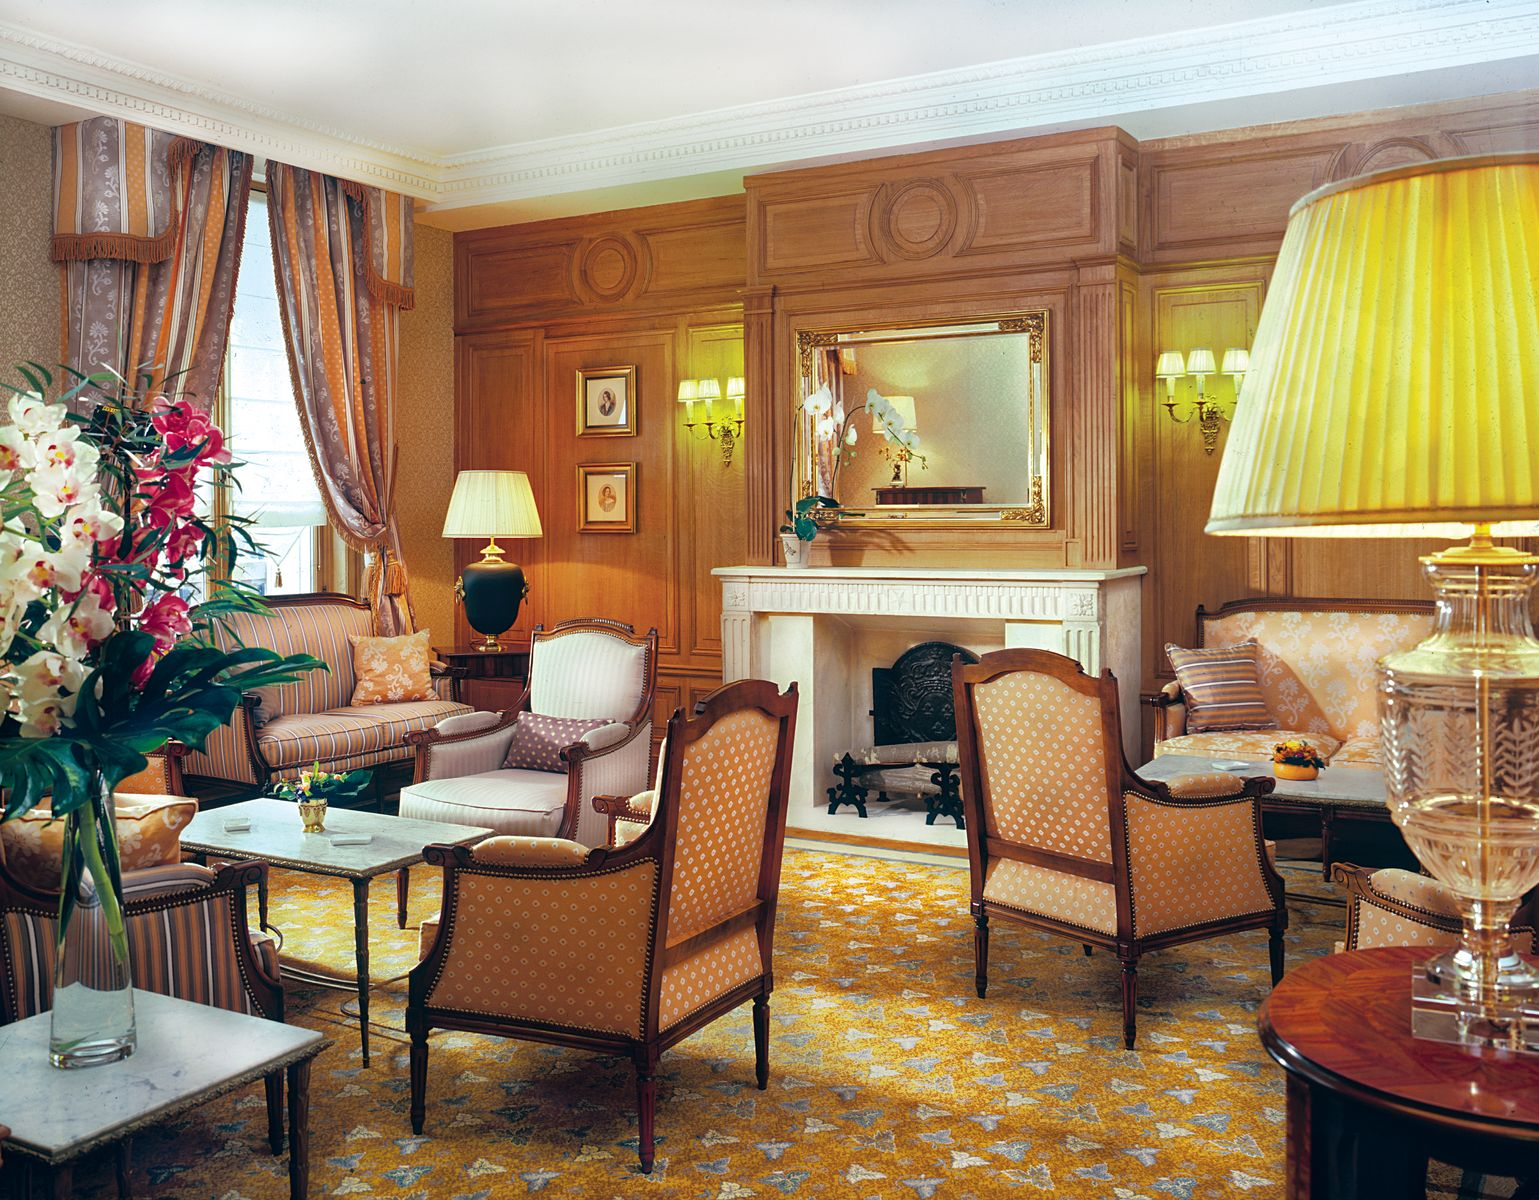 378/Galerie/3-Hotel_Mayfair_Paris_Lounge_resultat.jpg